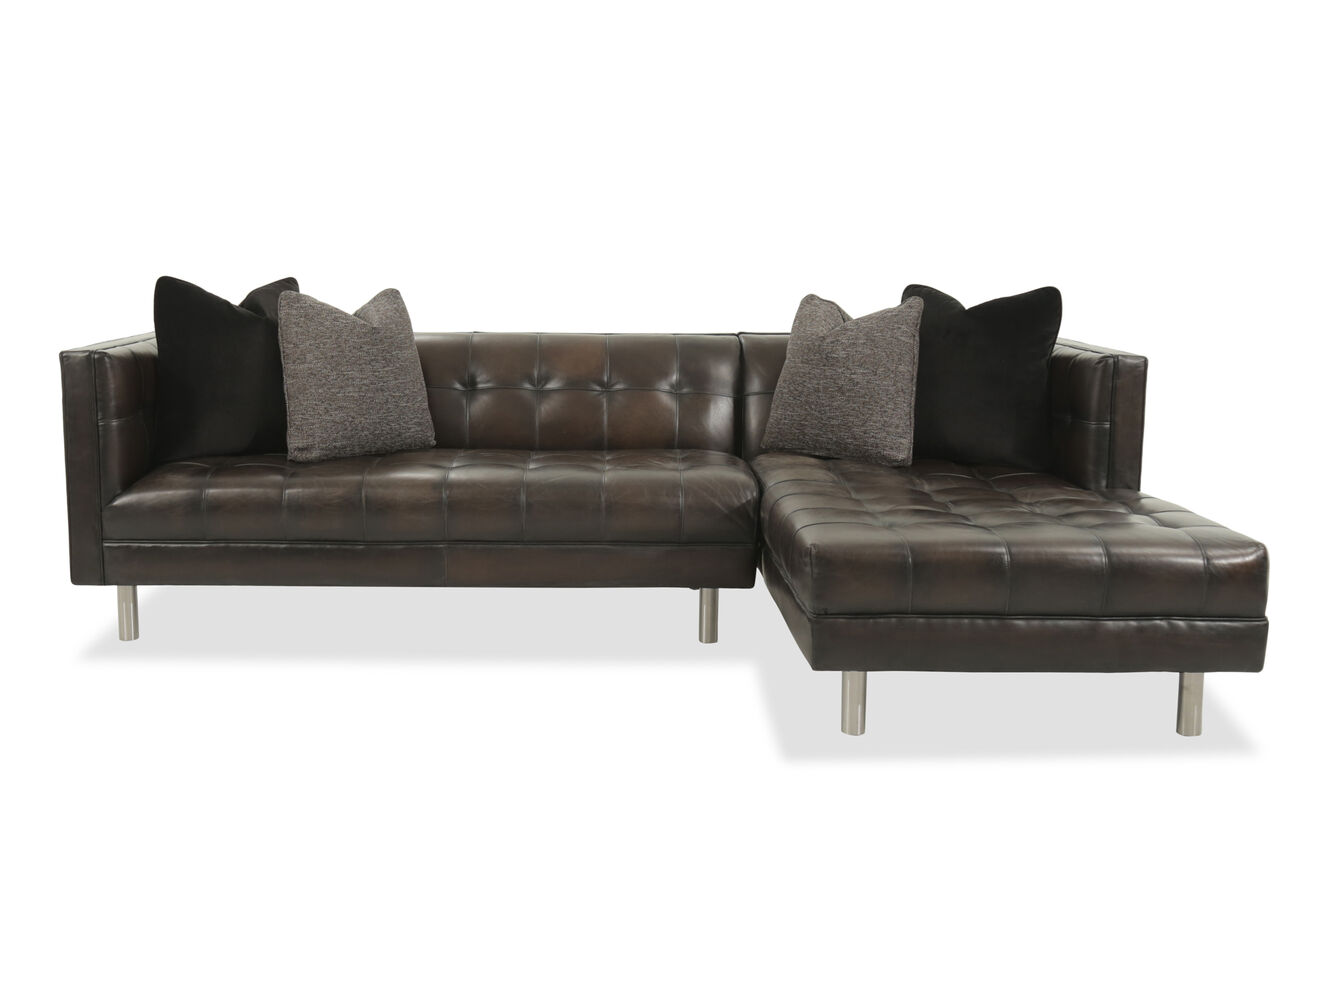 100 mathis brothers sofa sectionals mathis brothers for Sectional sofas mathis brothers